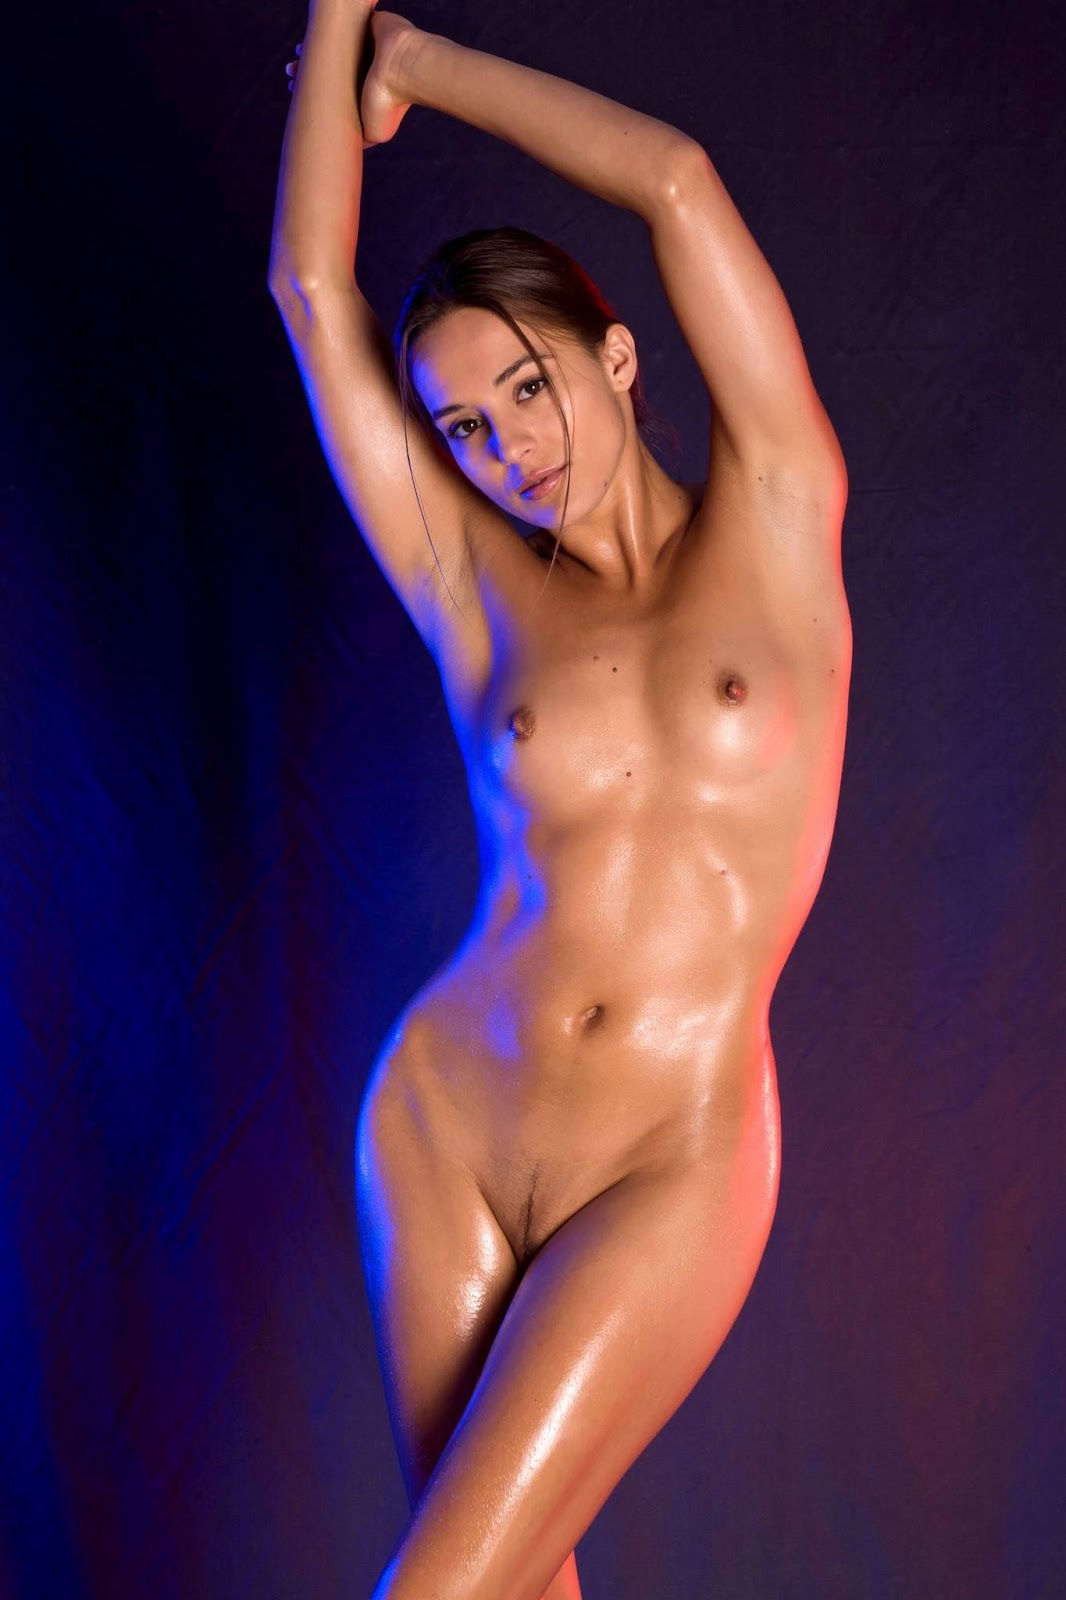 Sexy oiled girls nude useful